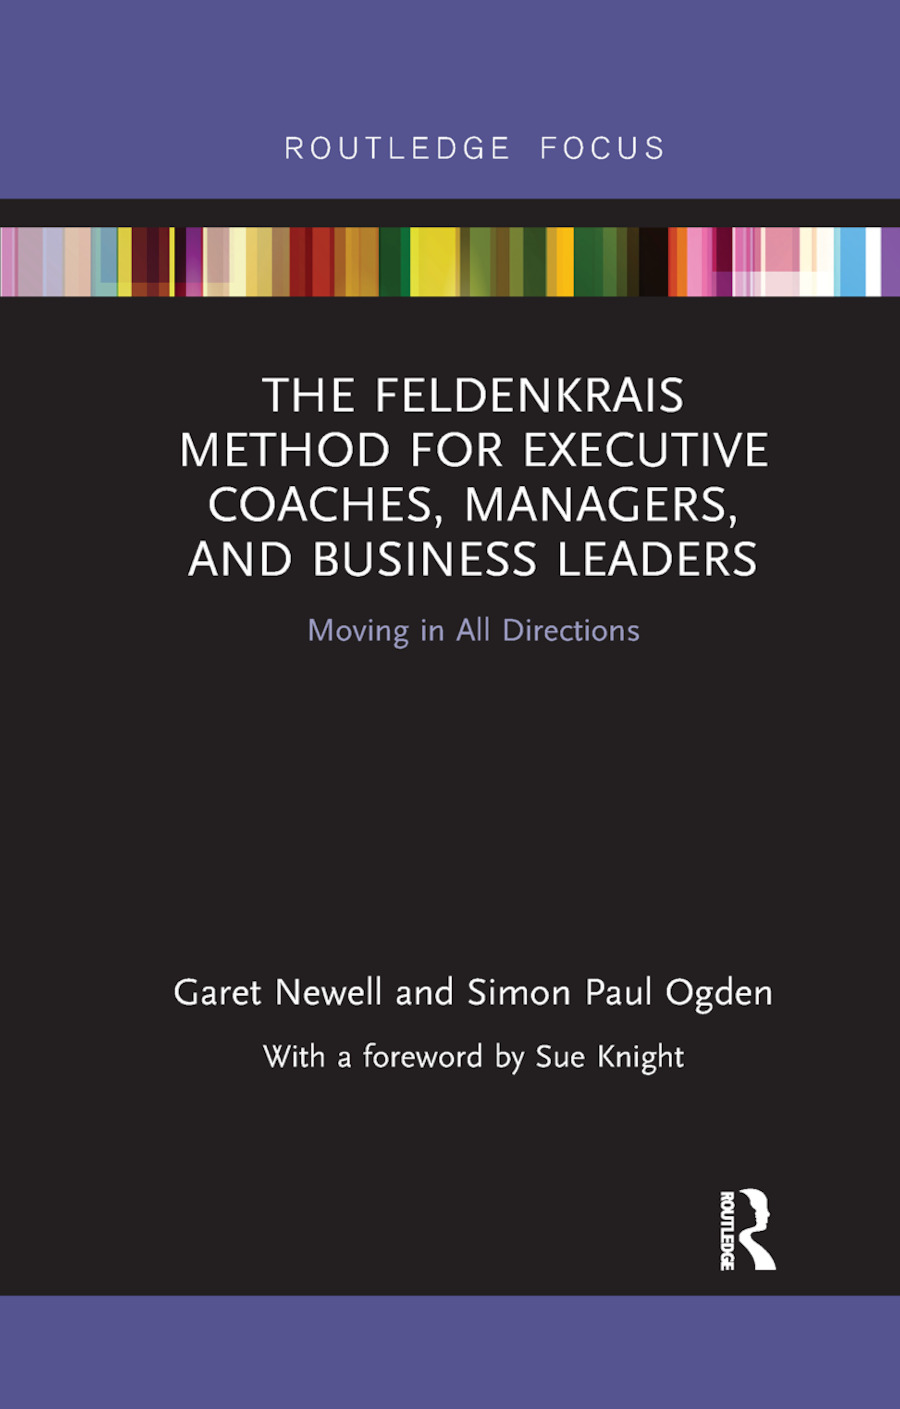 The Feldenkrais Method for Executive Coaches, Managers, and Business Leaders: Moving in All Directions book cover